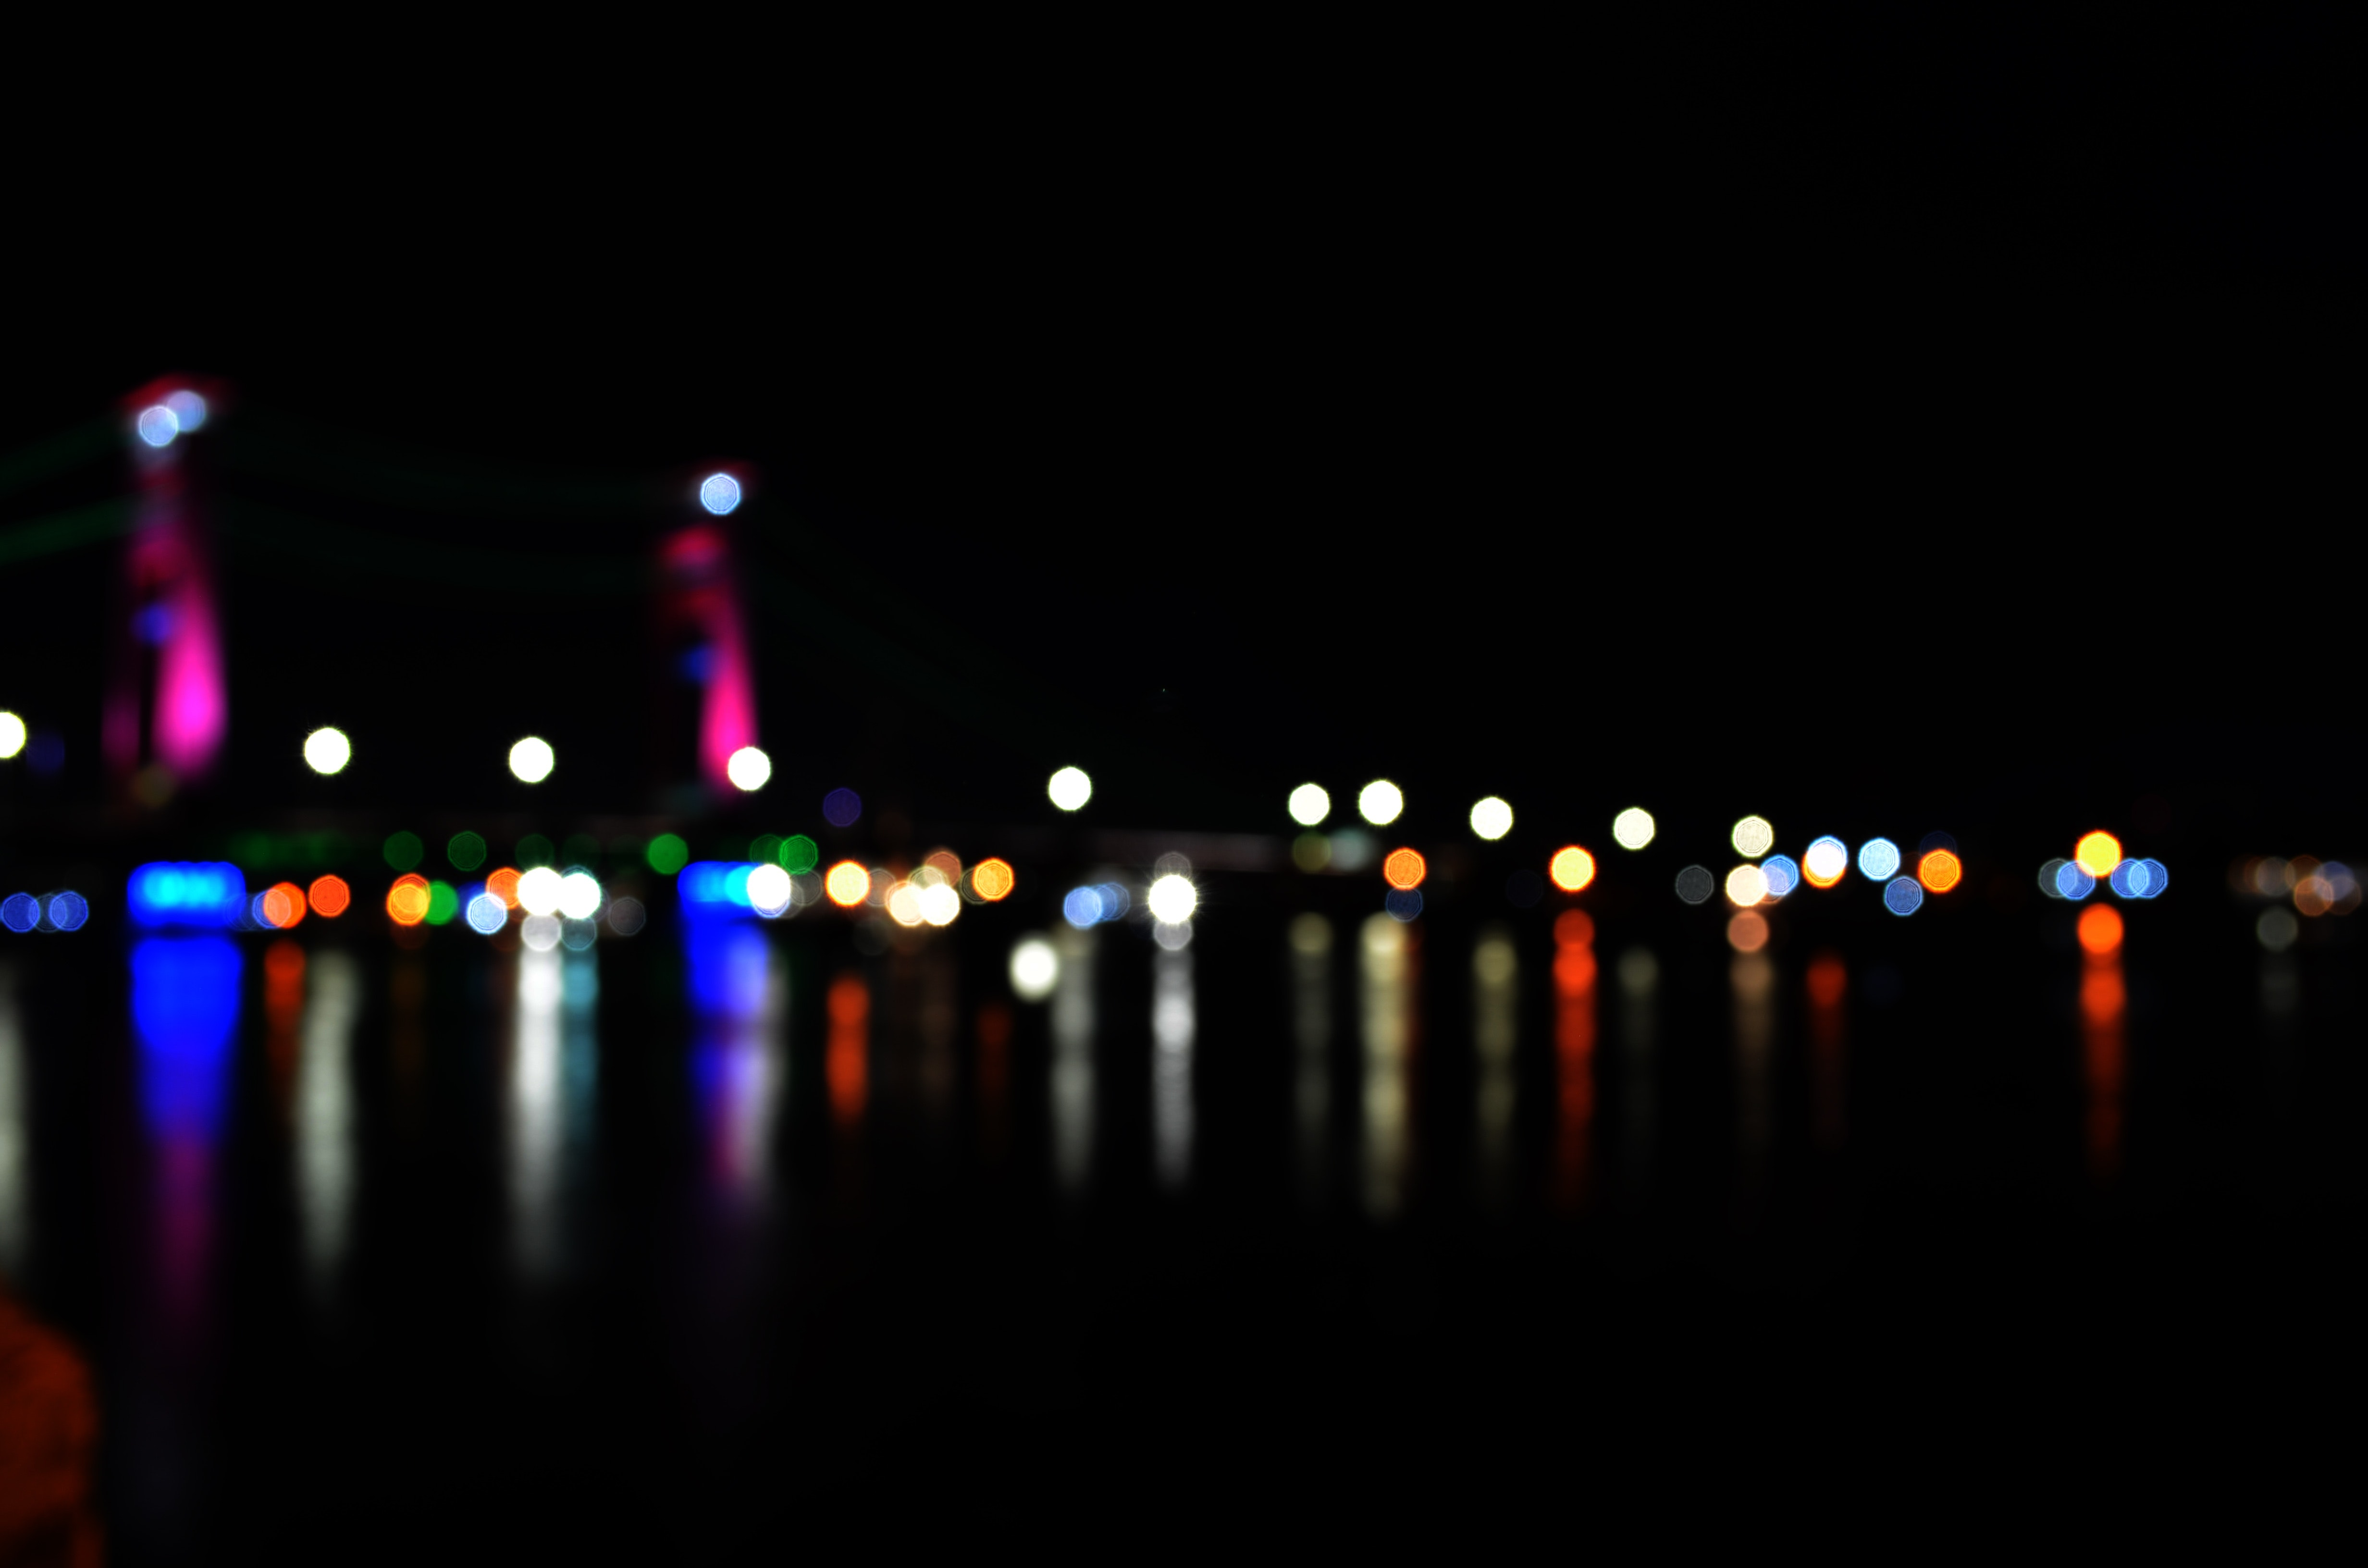 Defocused Image of Illuminated Lights at Night, Abstract, Festival, Reflections, Nightlife, HQ Photo